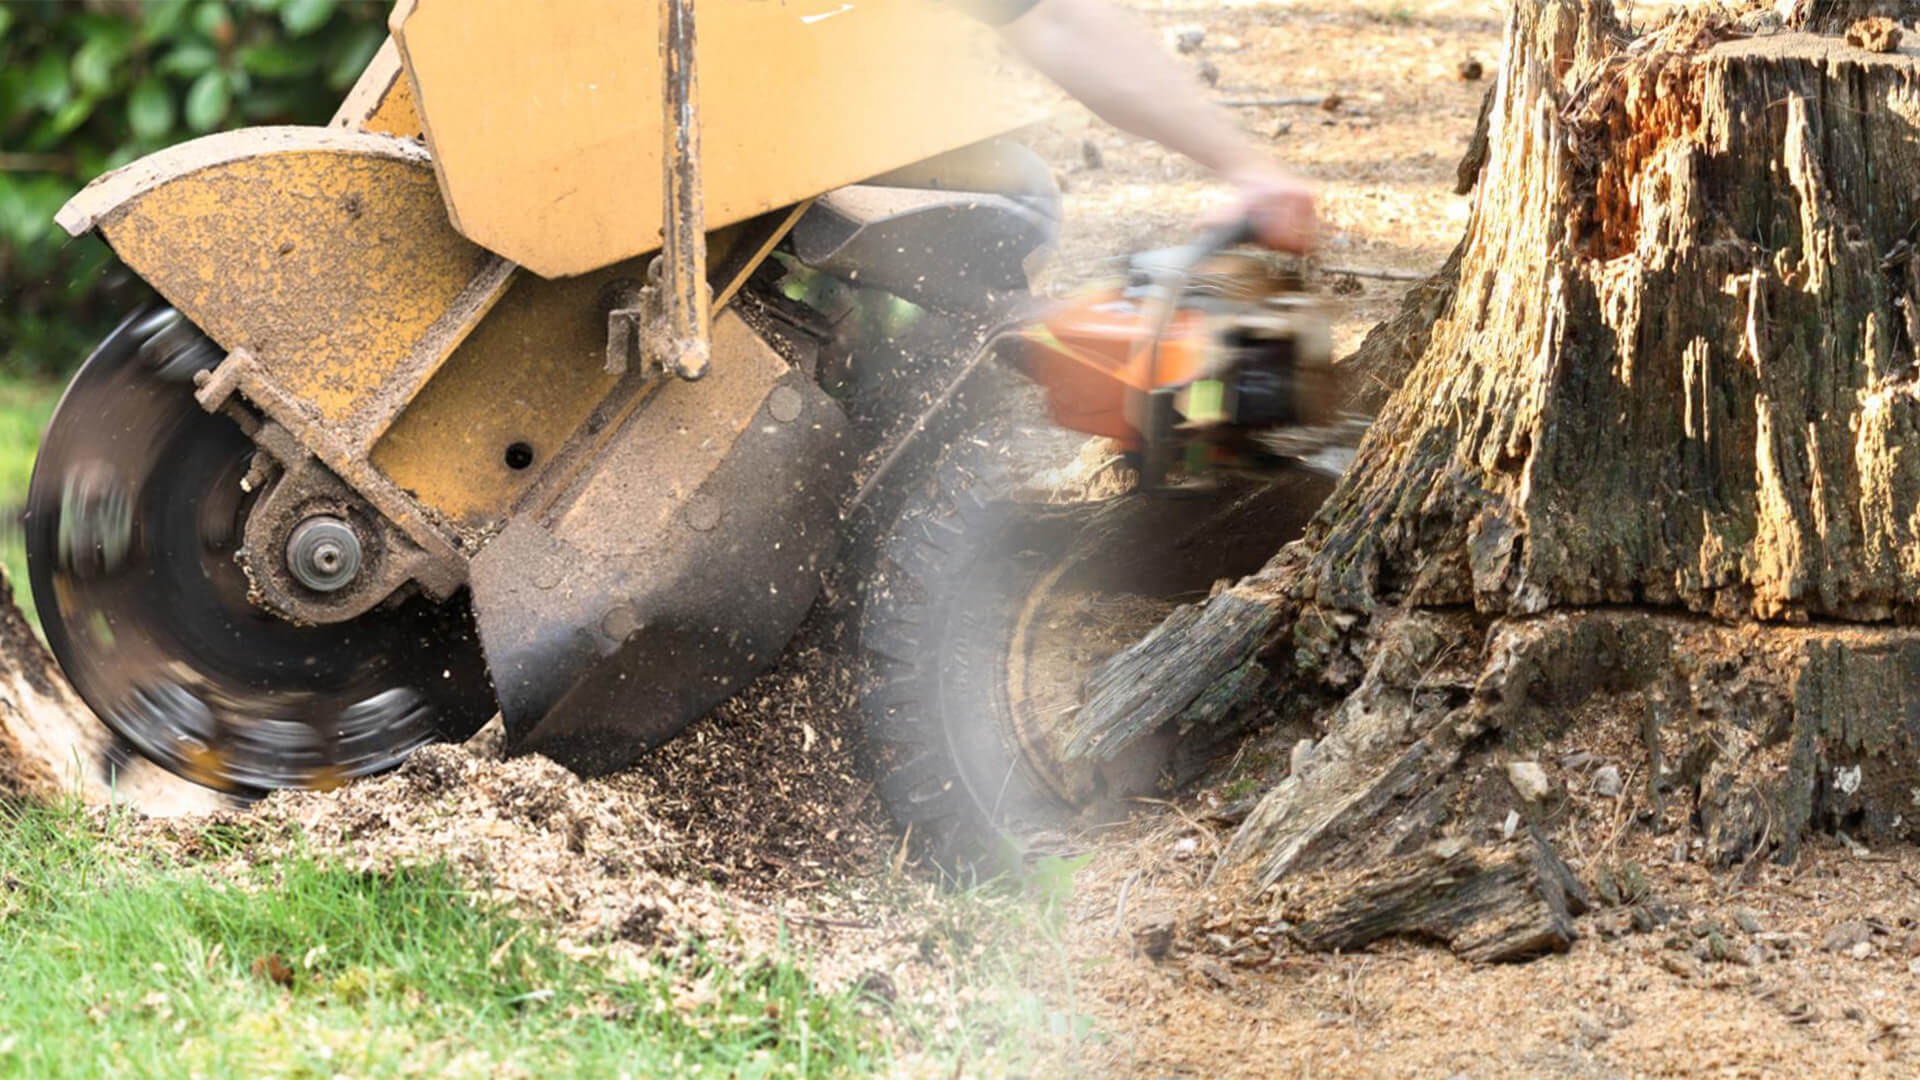 Stump grinding & removal-North Miami Beach FL Tree Trimming and Stump Grinding Services-We Offer Tree Trimming Services, Tree Removal, Tree Pruning, Tree Cutting, Residential and Commercial Tree Trimming Services, Storm Damage, Emergency Tree Removal, Land Clearing, Tree Companies, Tree Care Service, Stump Grinding, and we're the Best Tree Trimming Company Near You Guaranteed!